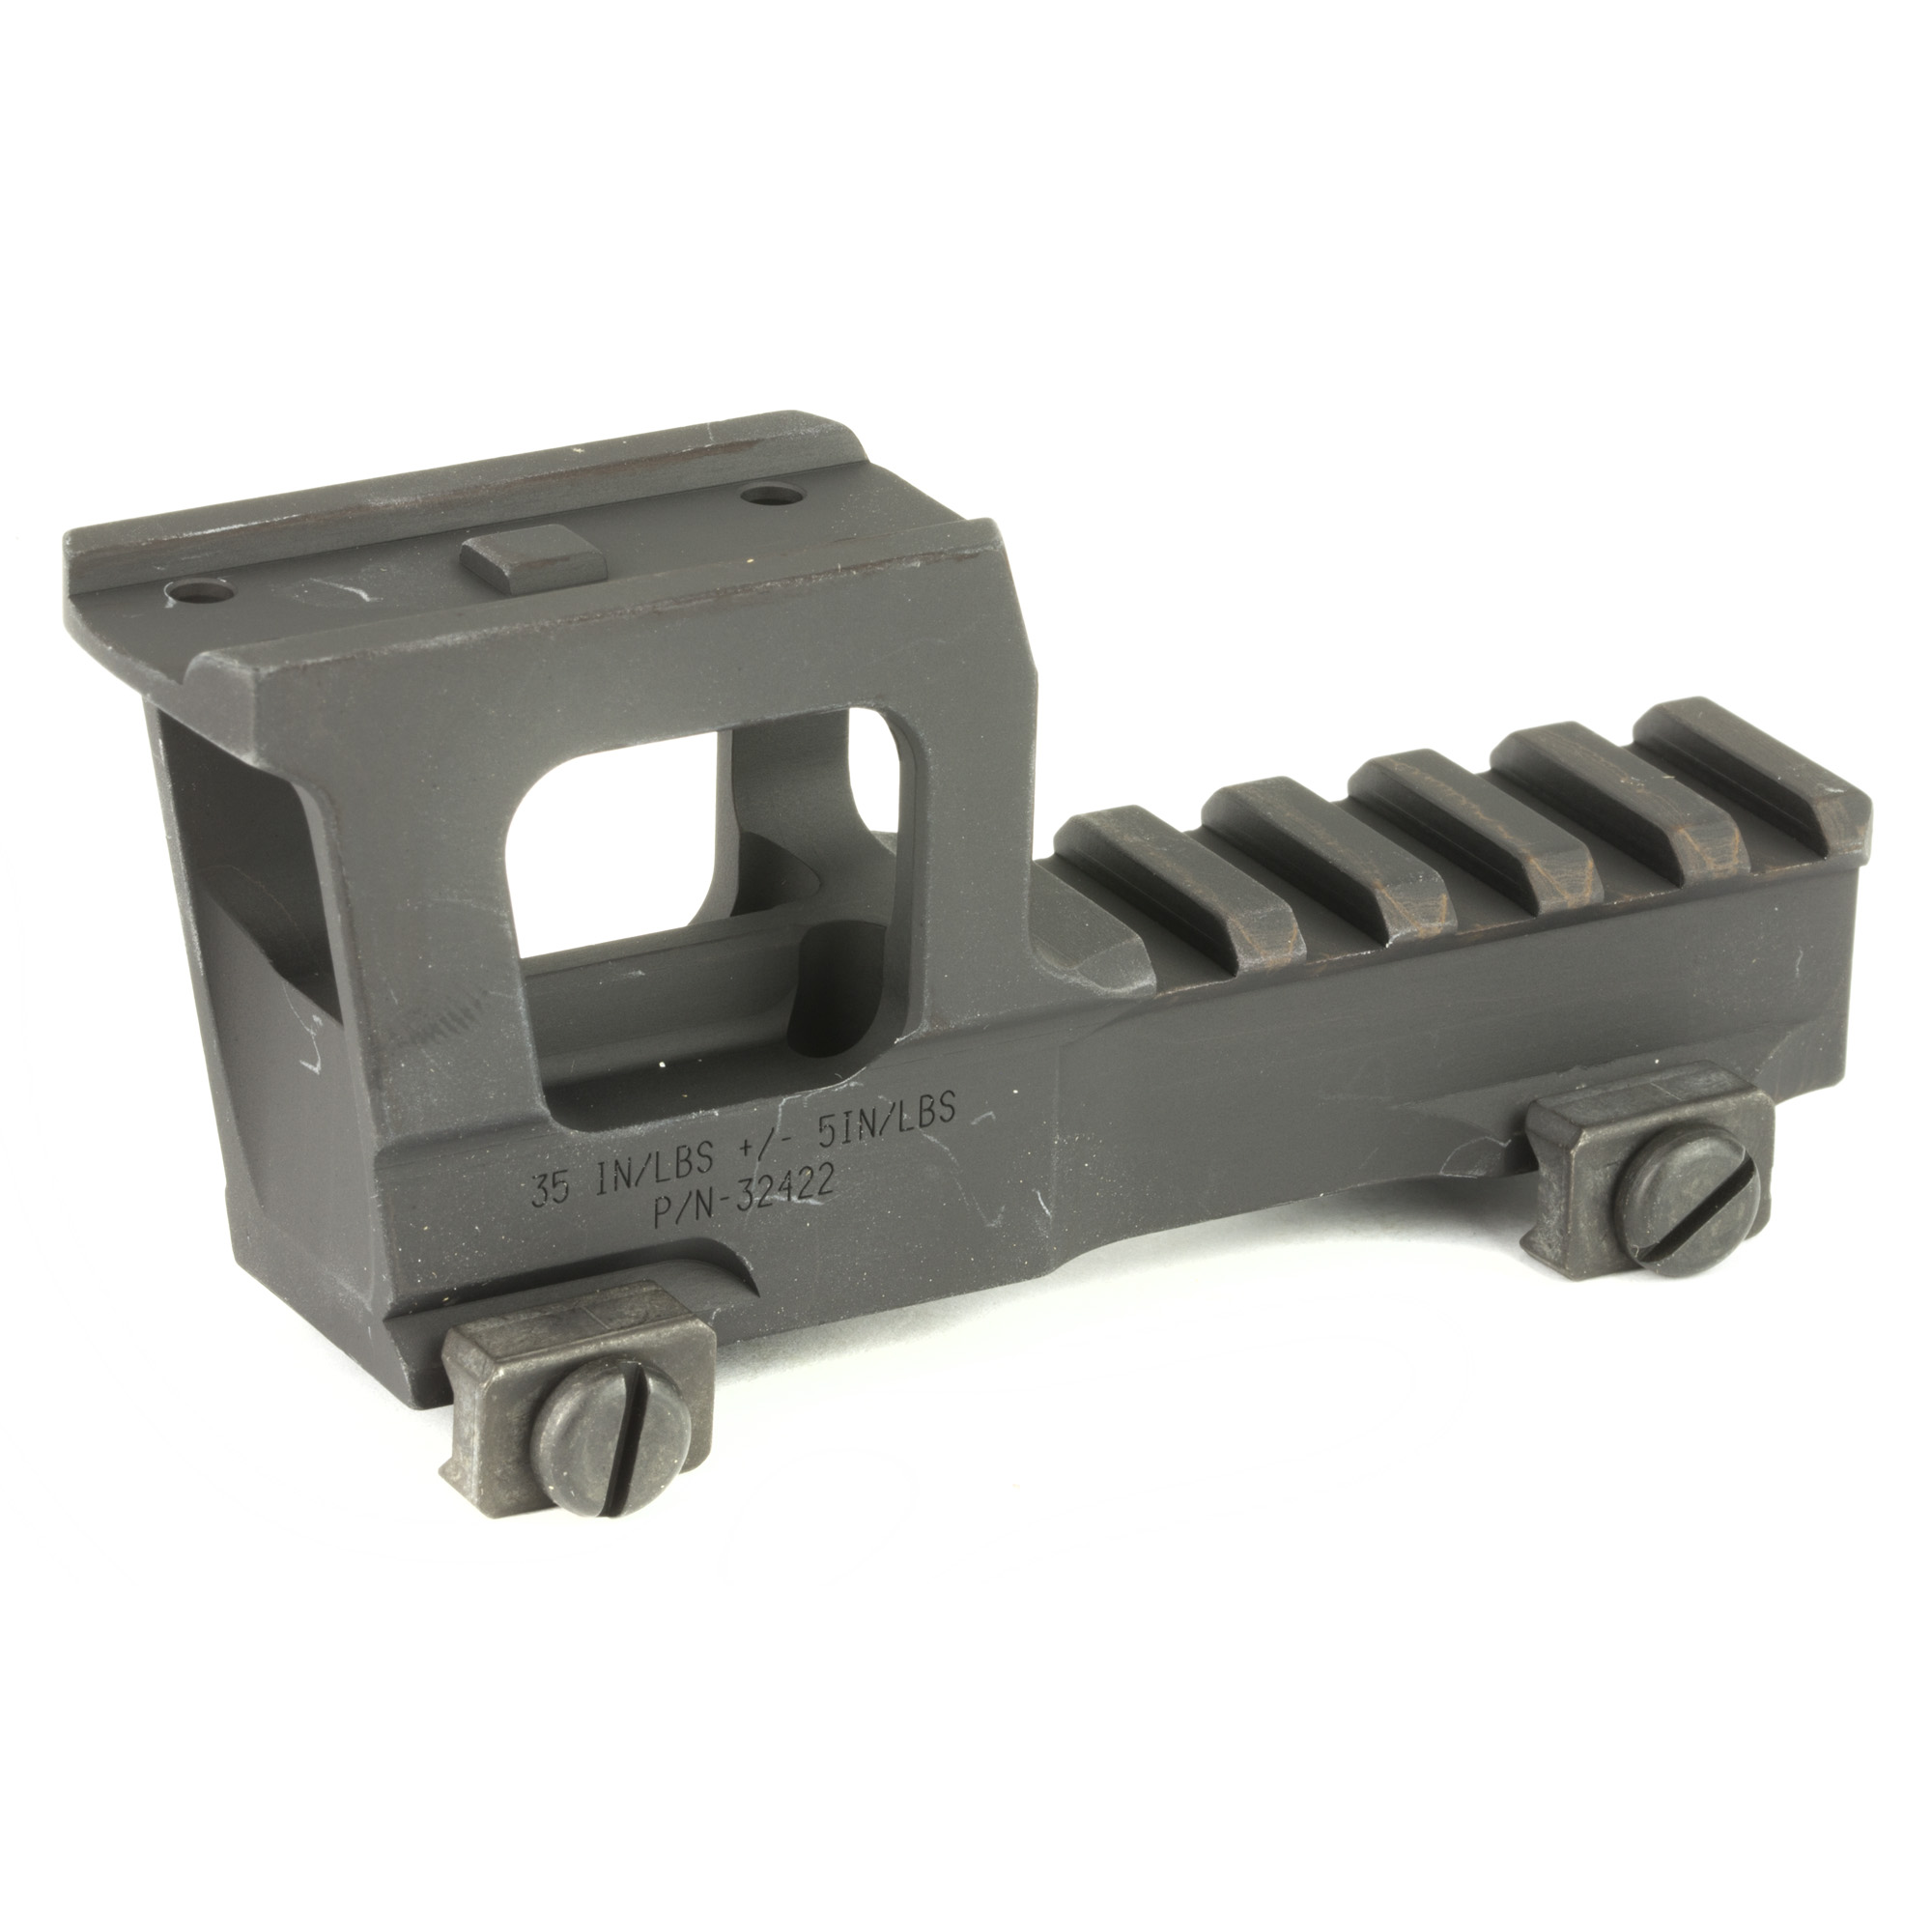 """Aimpoint Micro NVG High Rise Mount by lifting the optic up higher you can clear lights"""" lasers and any other items that can obstruct your sight picture. With Knights' new Aimpoint Micro NVG mount"""" they push the boundaries further than before. With a height of 2.33"""" from the top of your 1913 pic rail to the center point of your optic"""" you now have the ability to see your irons through the mount."""